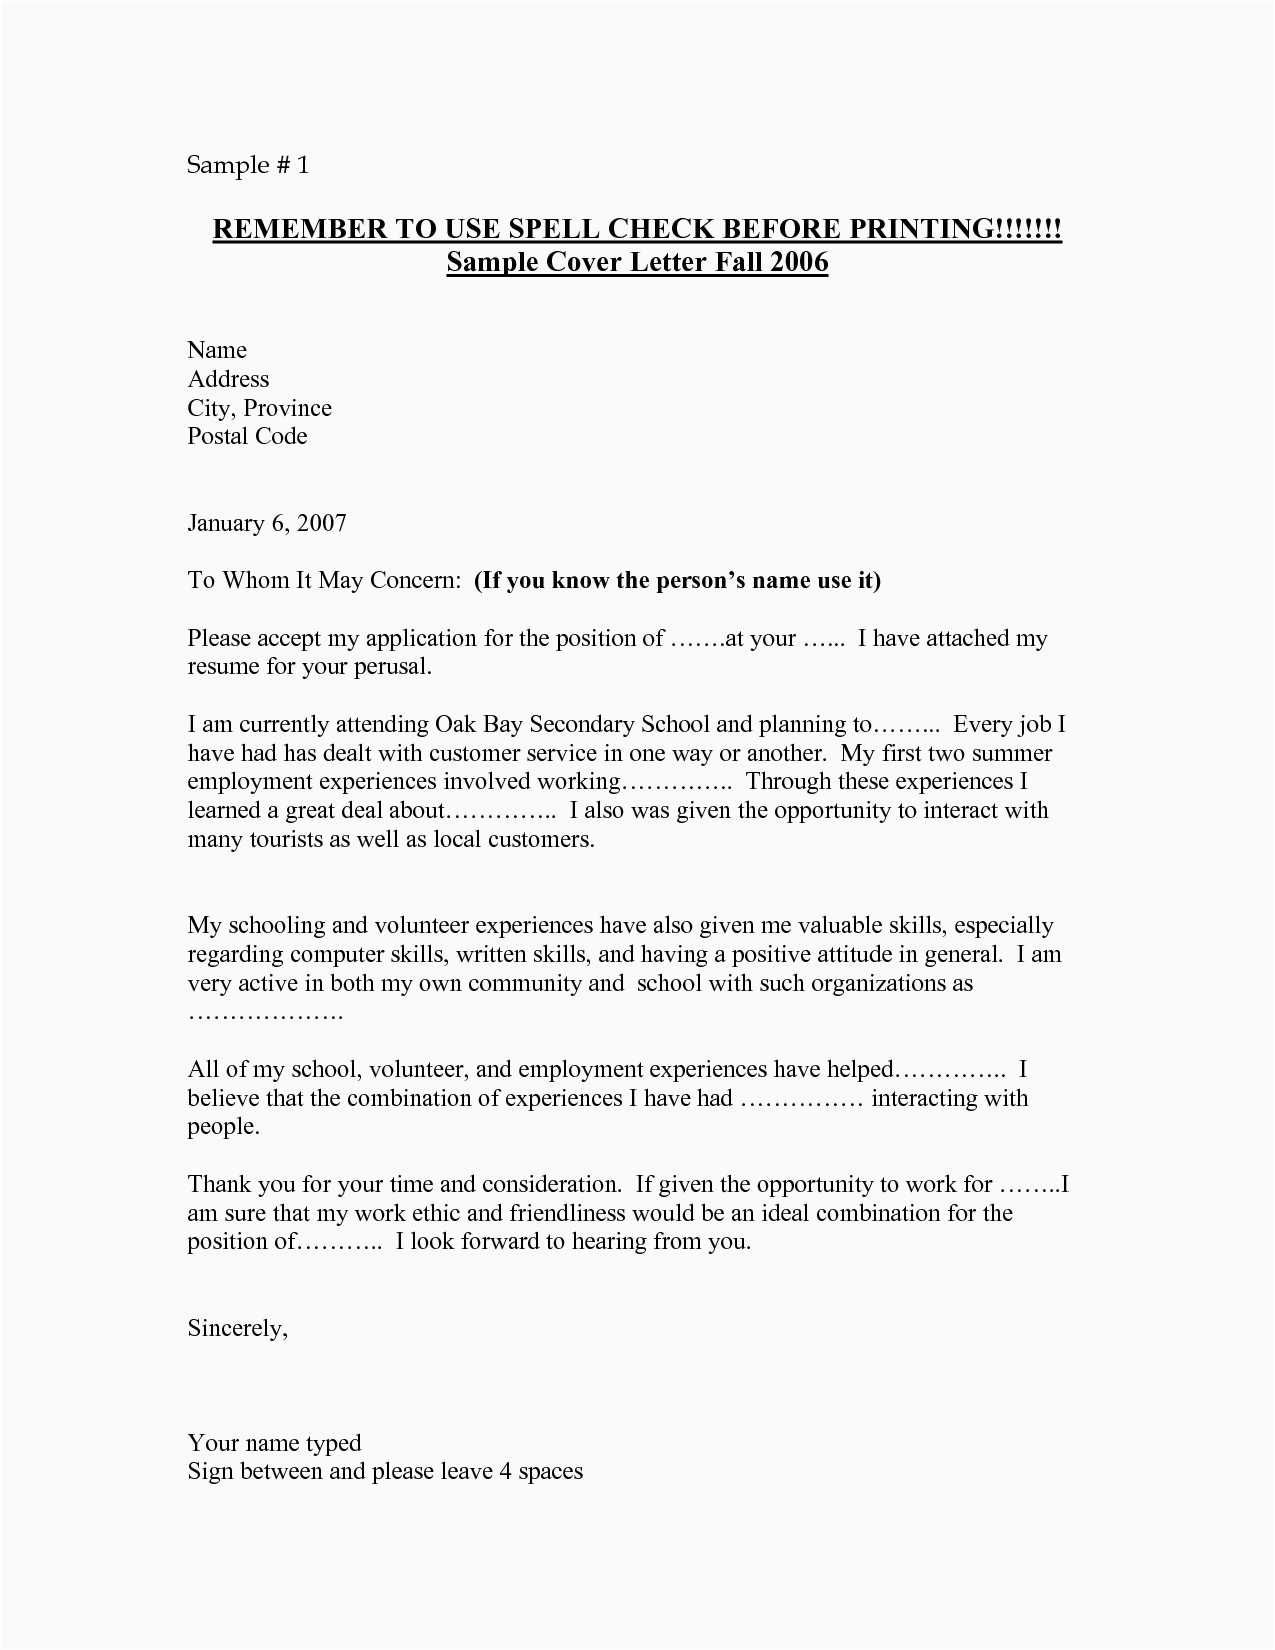 23 Addressing A Cover Letter To Unknown In 2020 Cover Letter Template Cover Letter For Resume Cover Letter